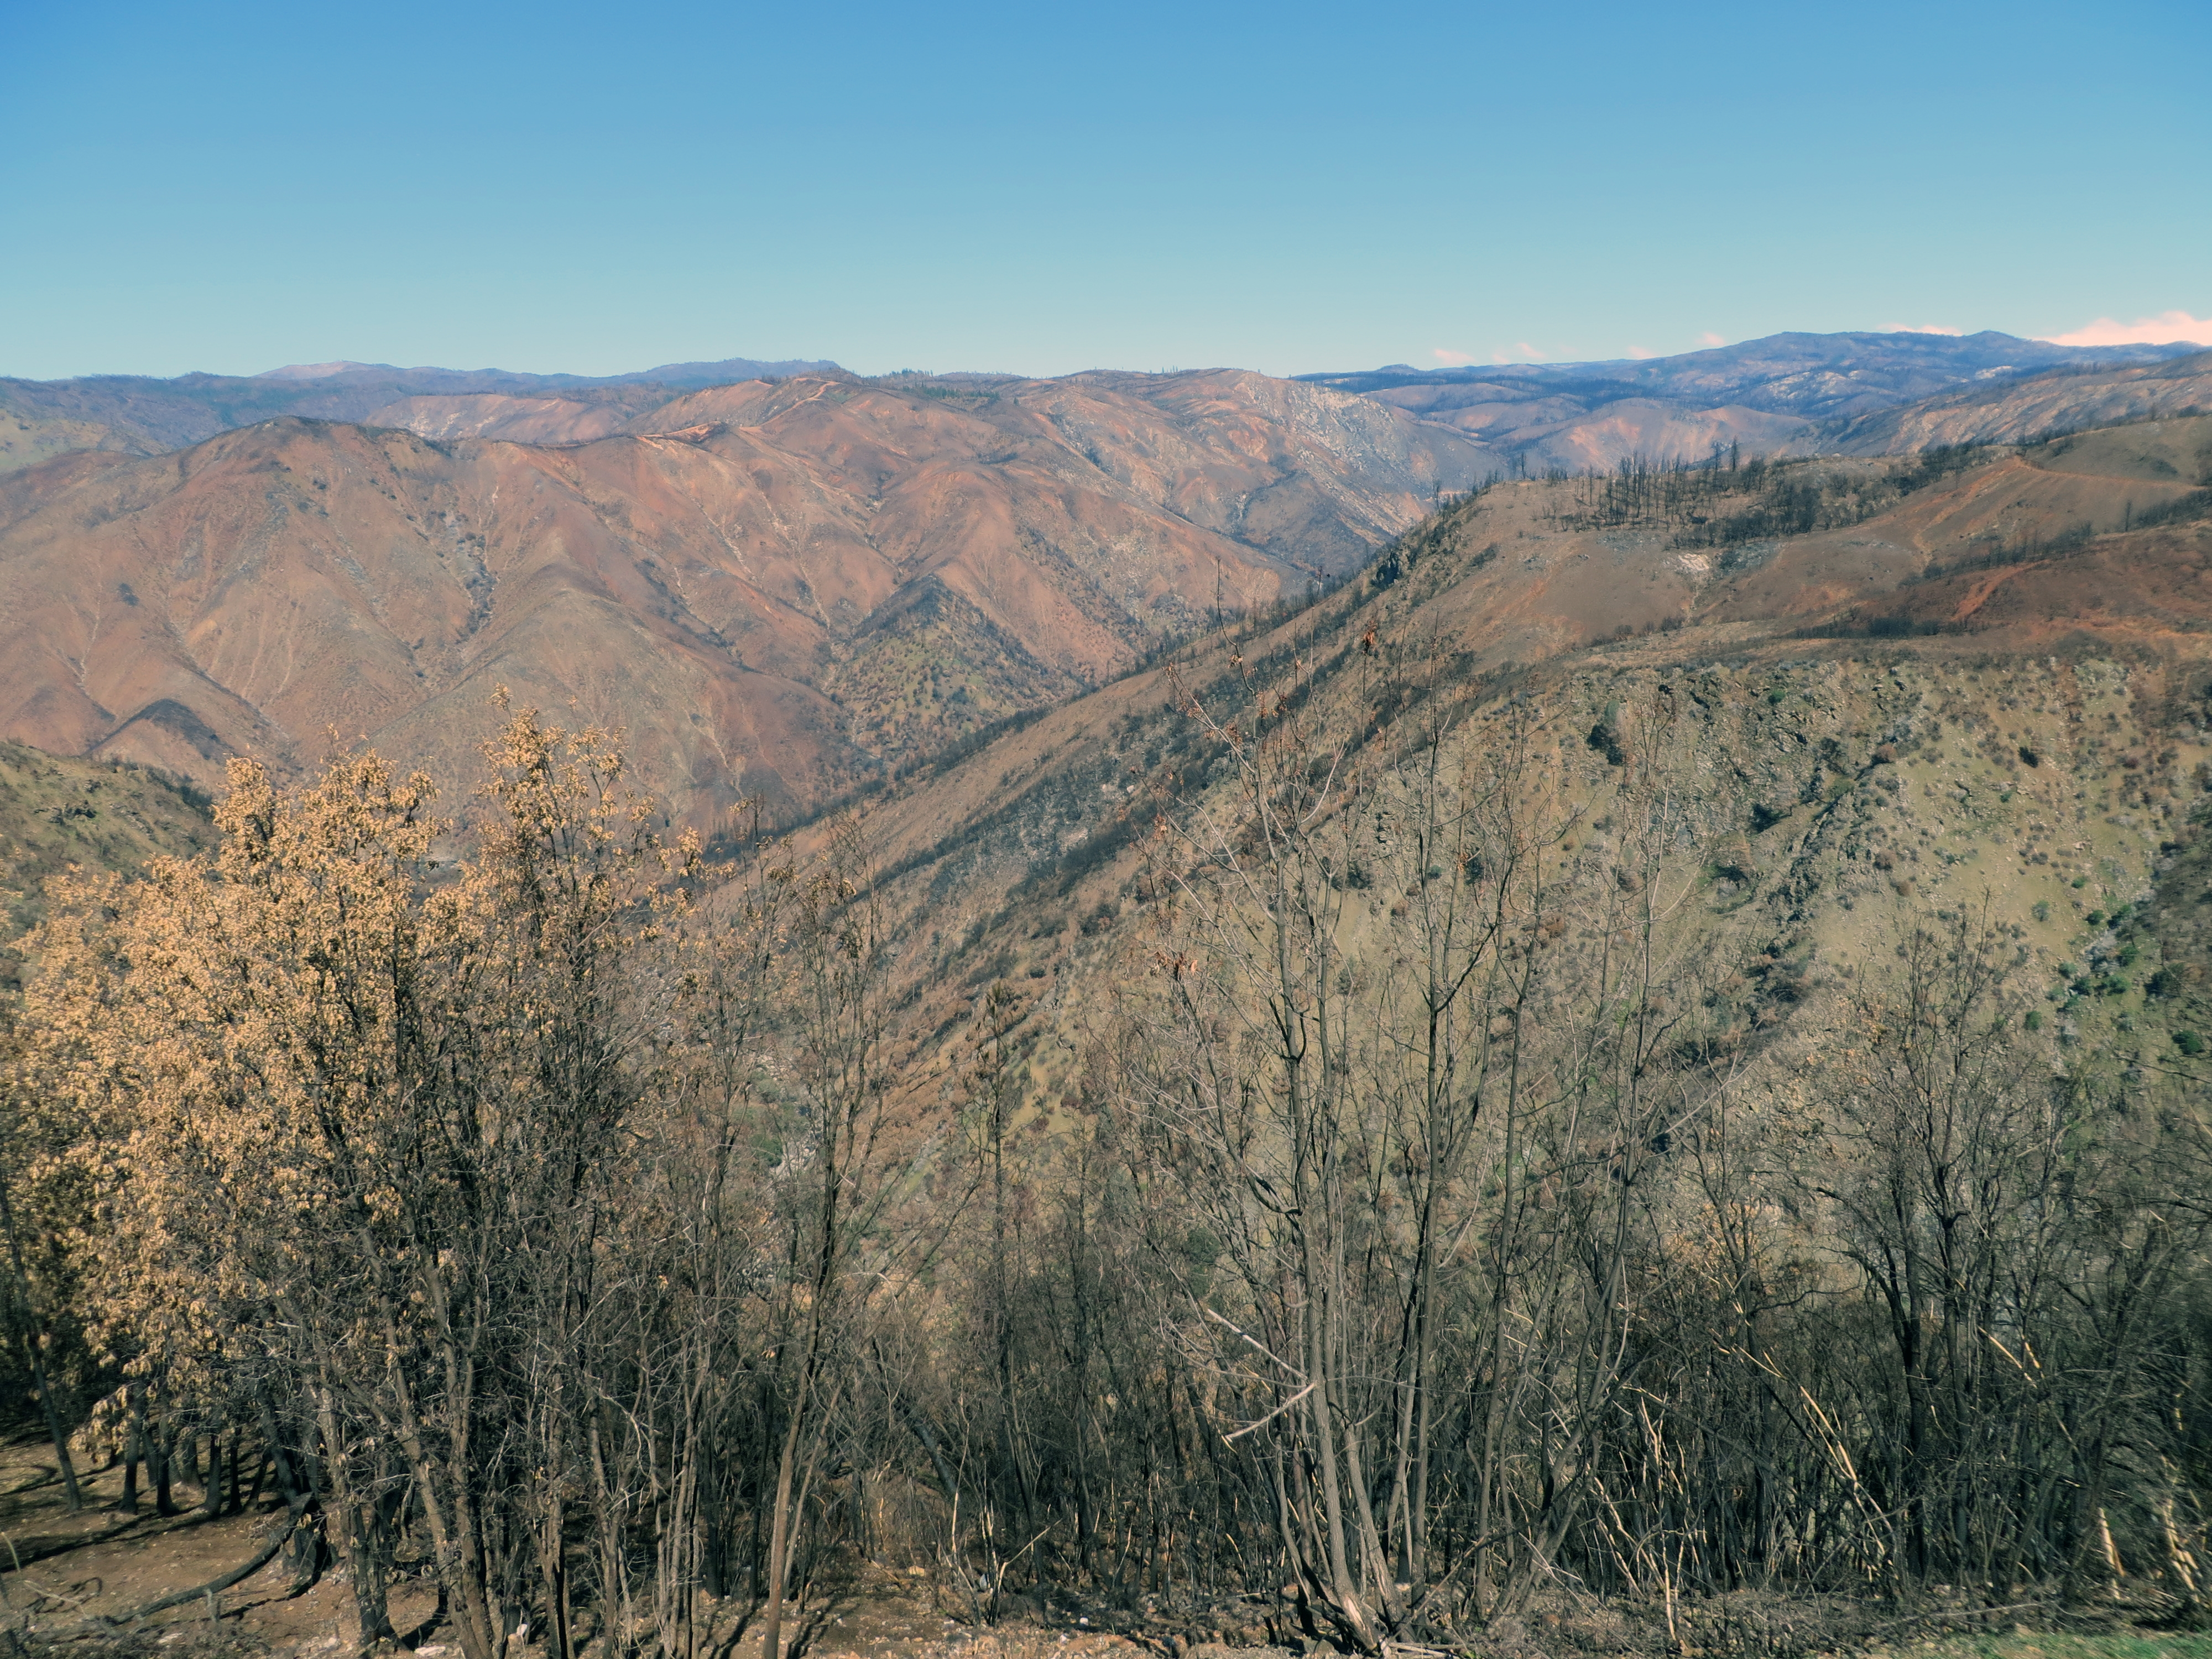 Far below the Rim of the World vista point, the canyon of the South Fork of the Tuolumne River winds its way northwestward, joining its parent, the Tuolumne River proper, in the left middleground of the image.  (photo by D. Speredelozzi)